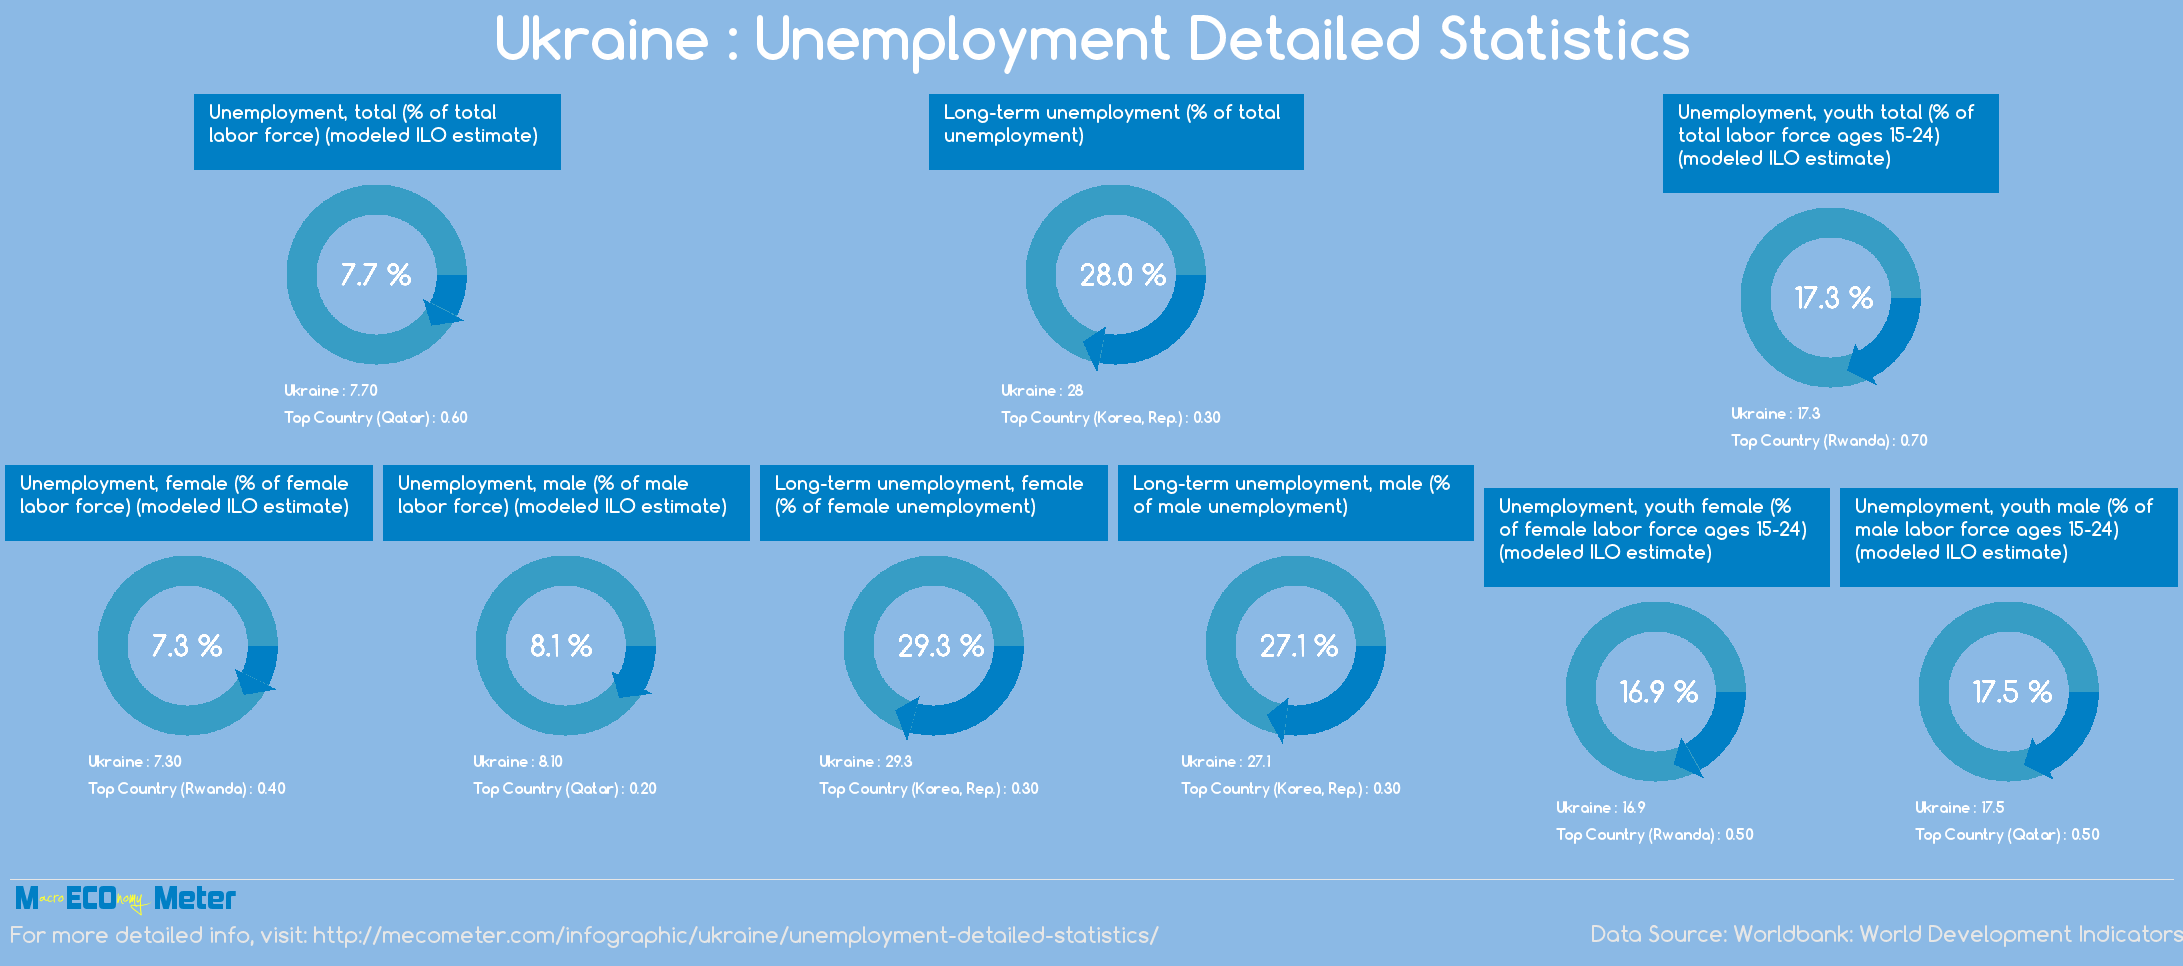 Ukraine : Unemployment Detailed Statistics